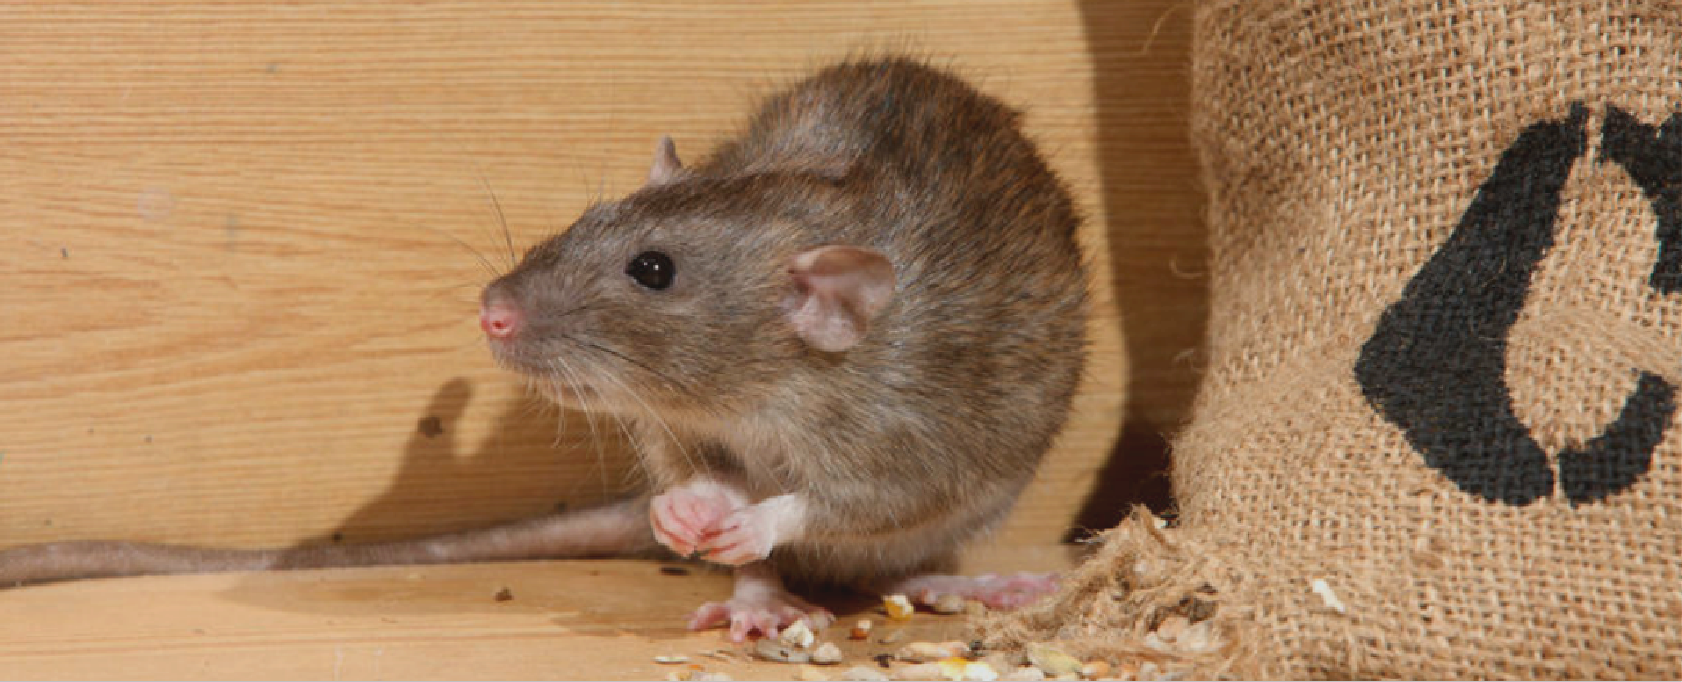 Image of roof rat that is feeding